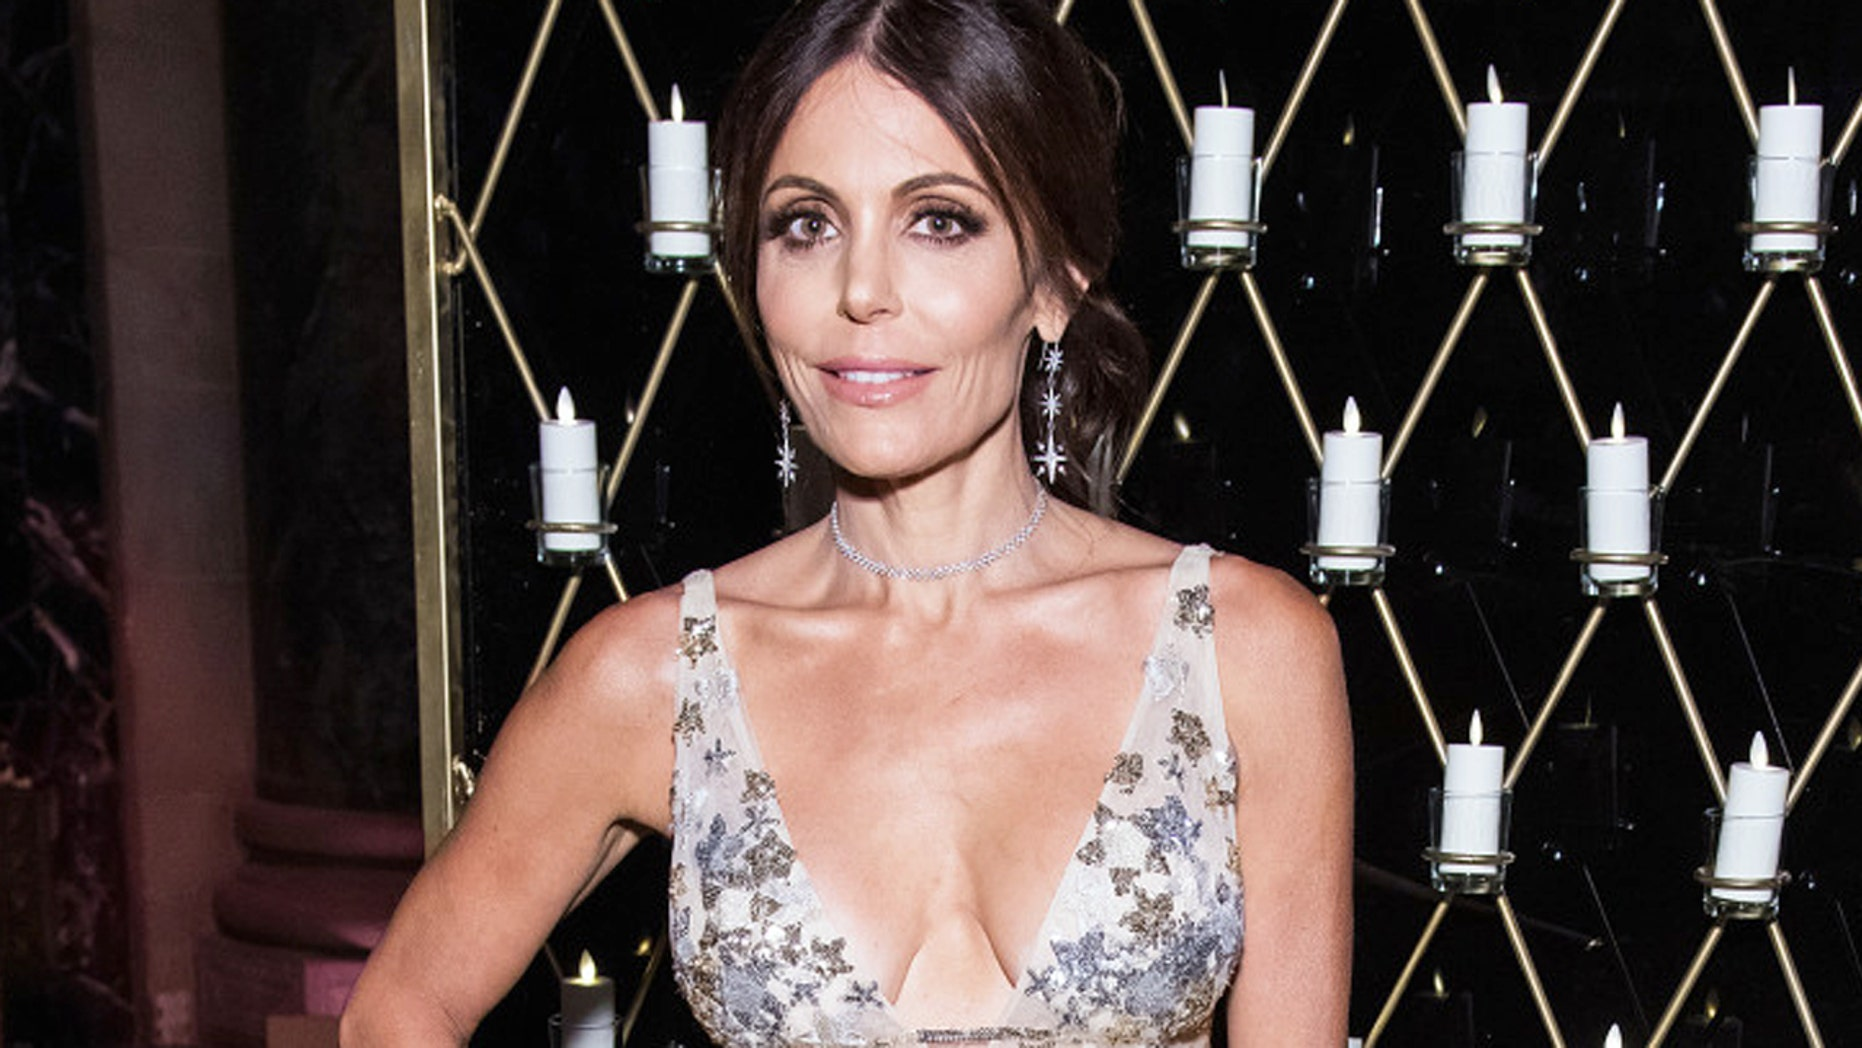 Bethenny Frankel reveals that her former boyfriend Dennis Shields was with her for the taping of the 'RHONY' reunion a month before he died.